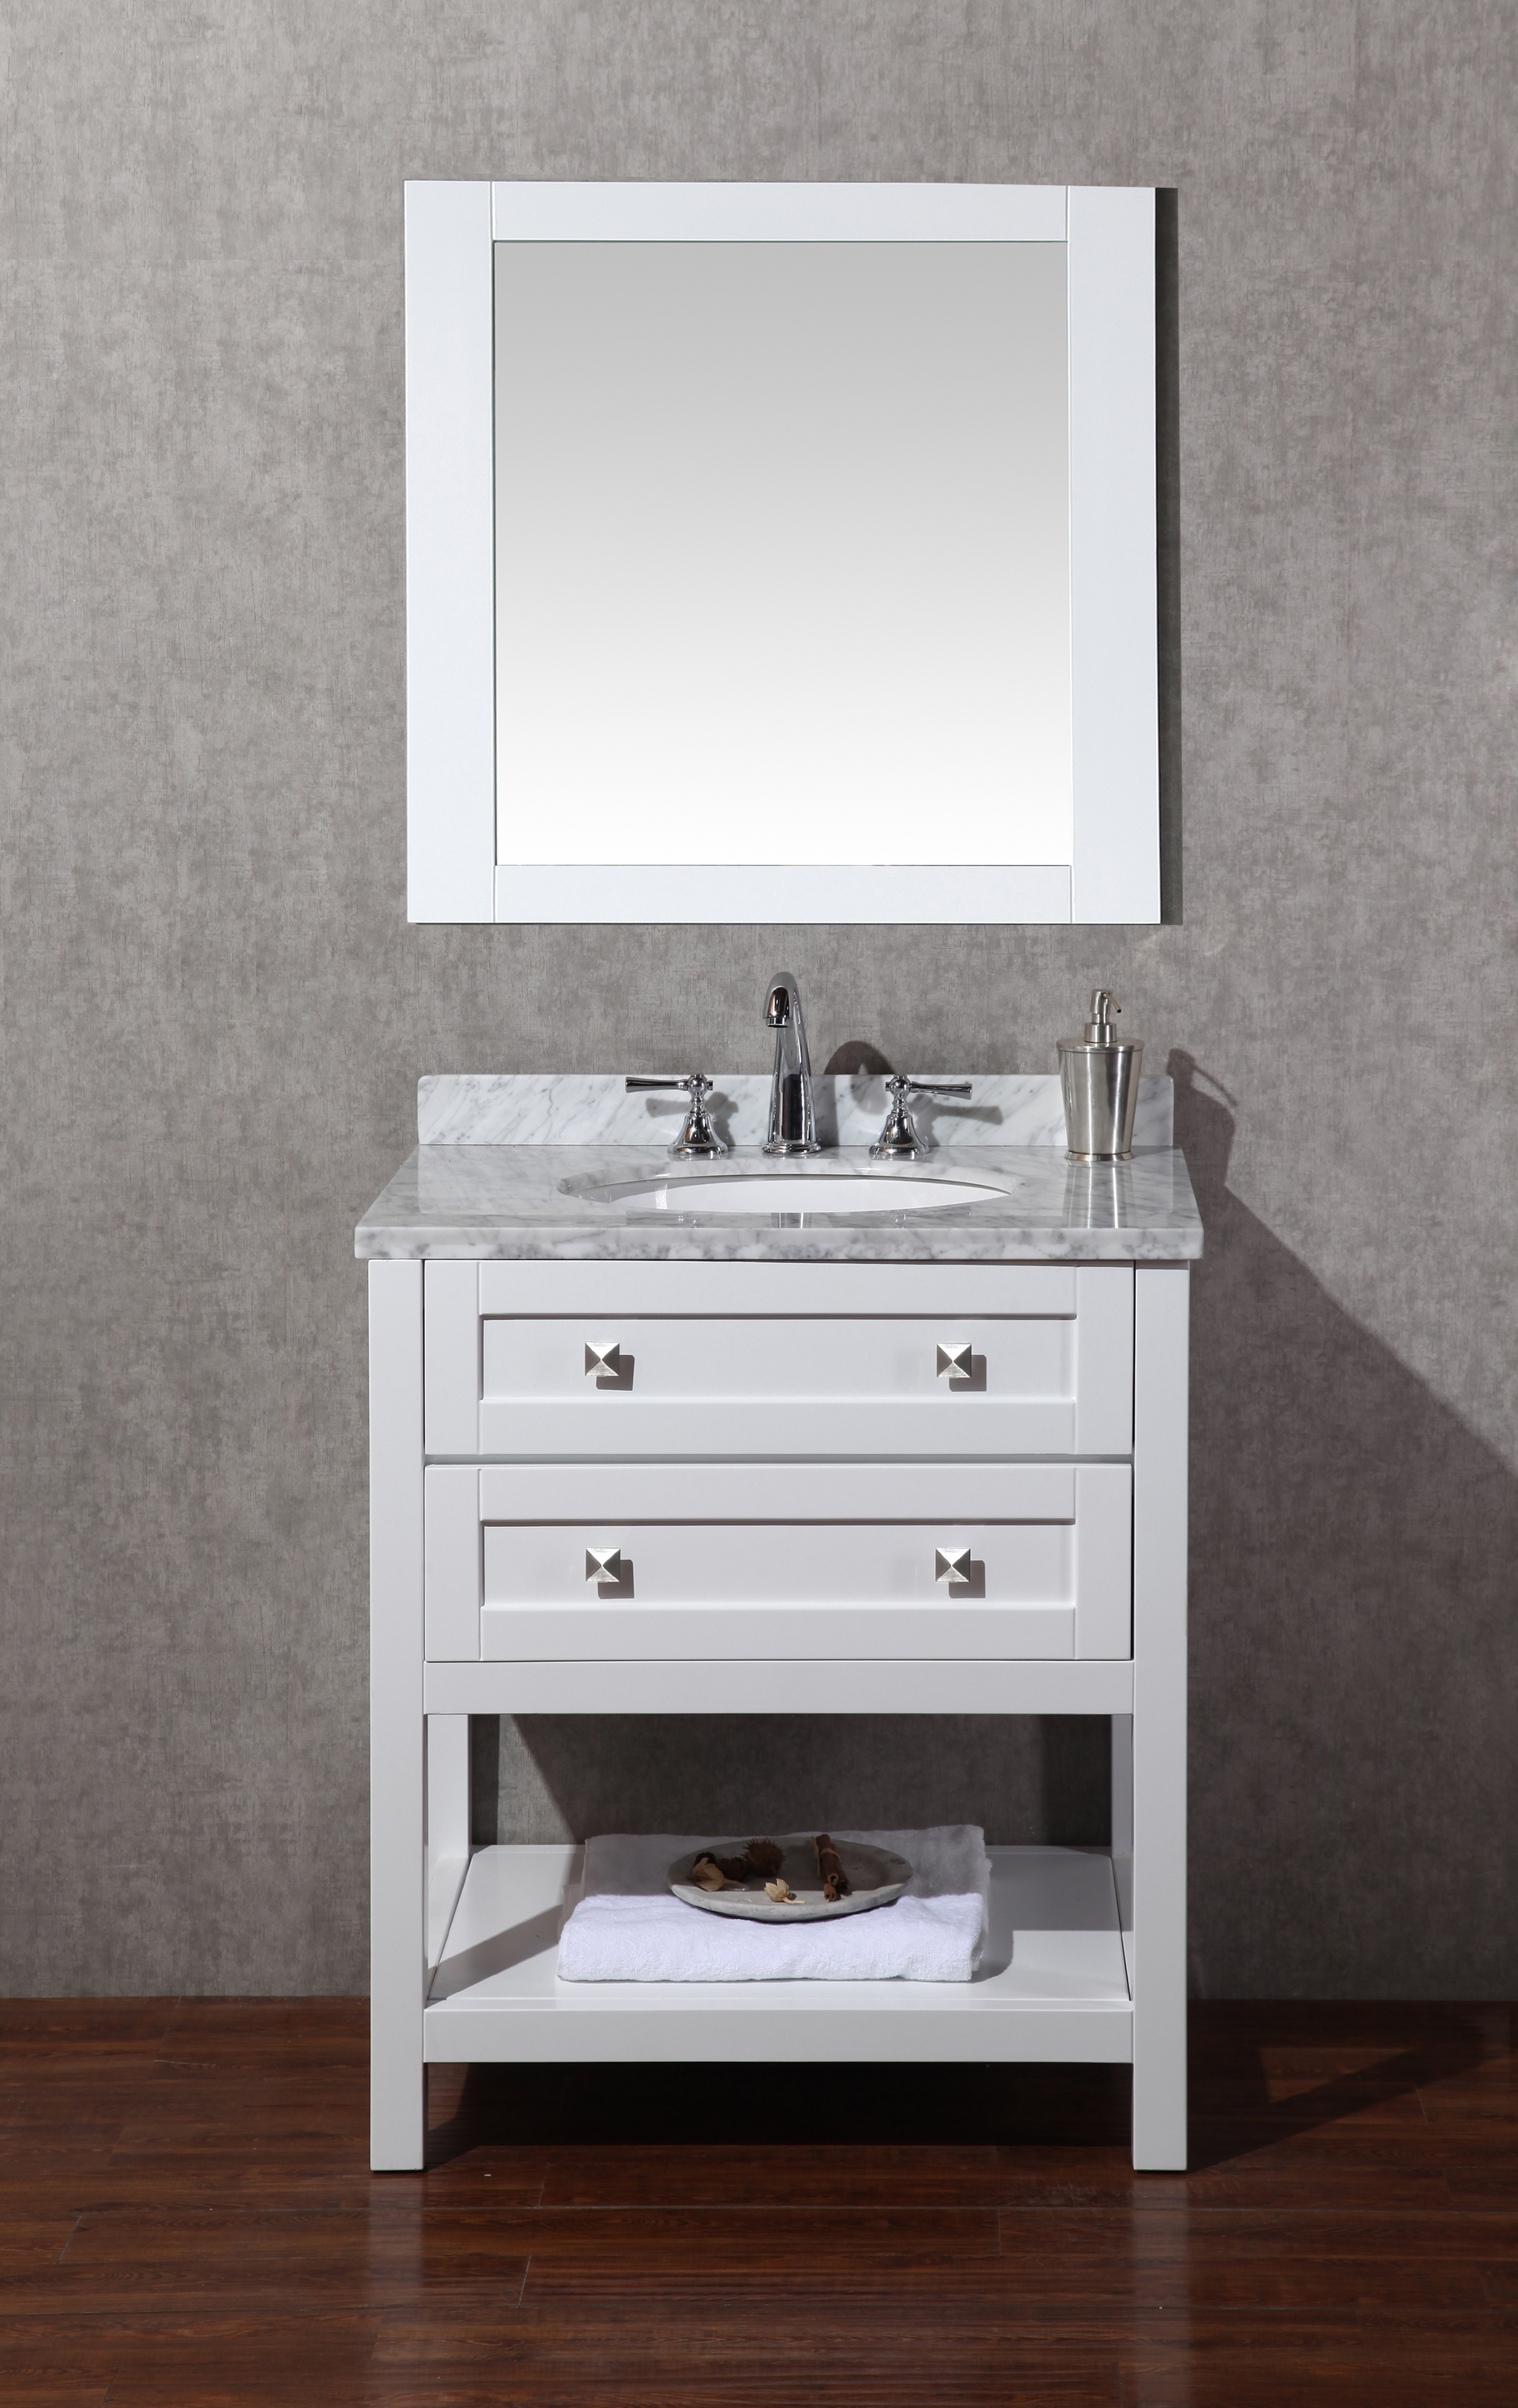 Myhomeandbath Sink Bathroom Vanity Mirror Pure Marlasingle